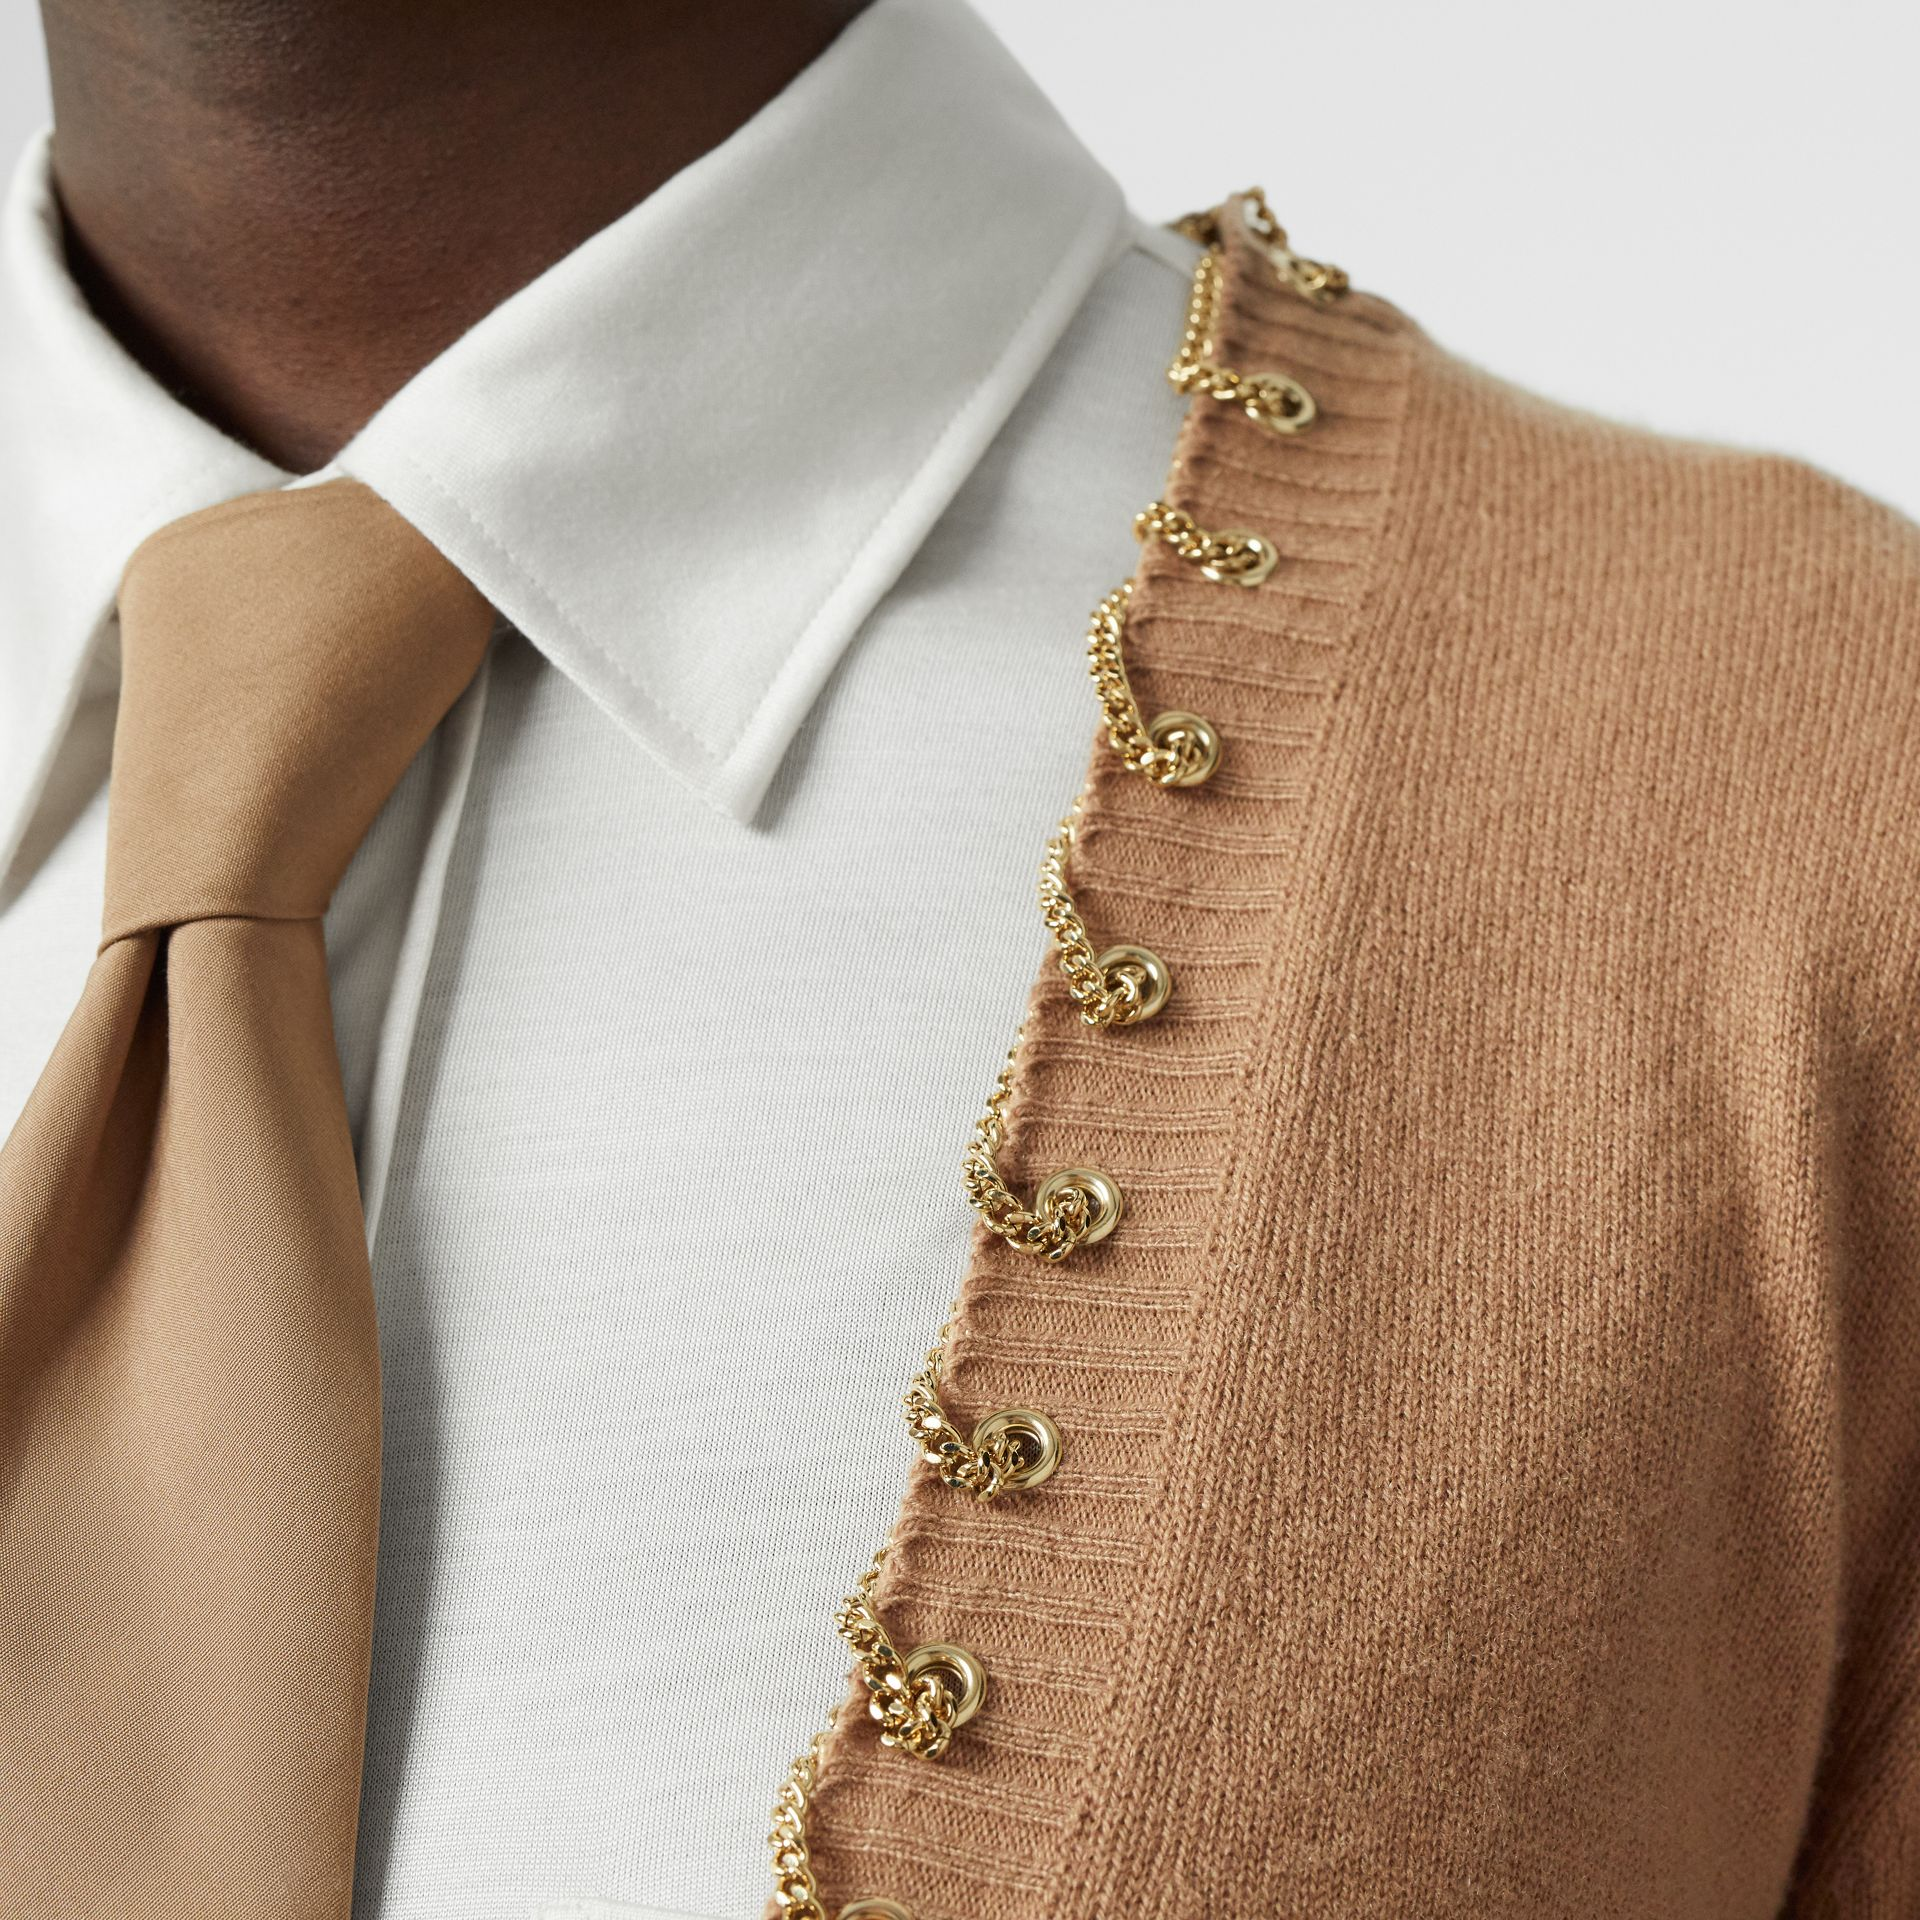 Chain Detail Cashmere Sweater in Camel - Women | Burberry - gallery image 4